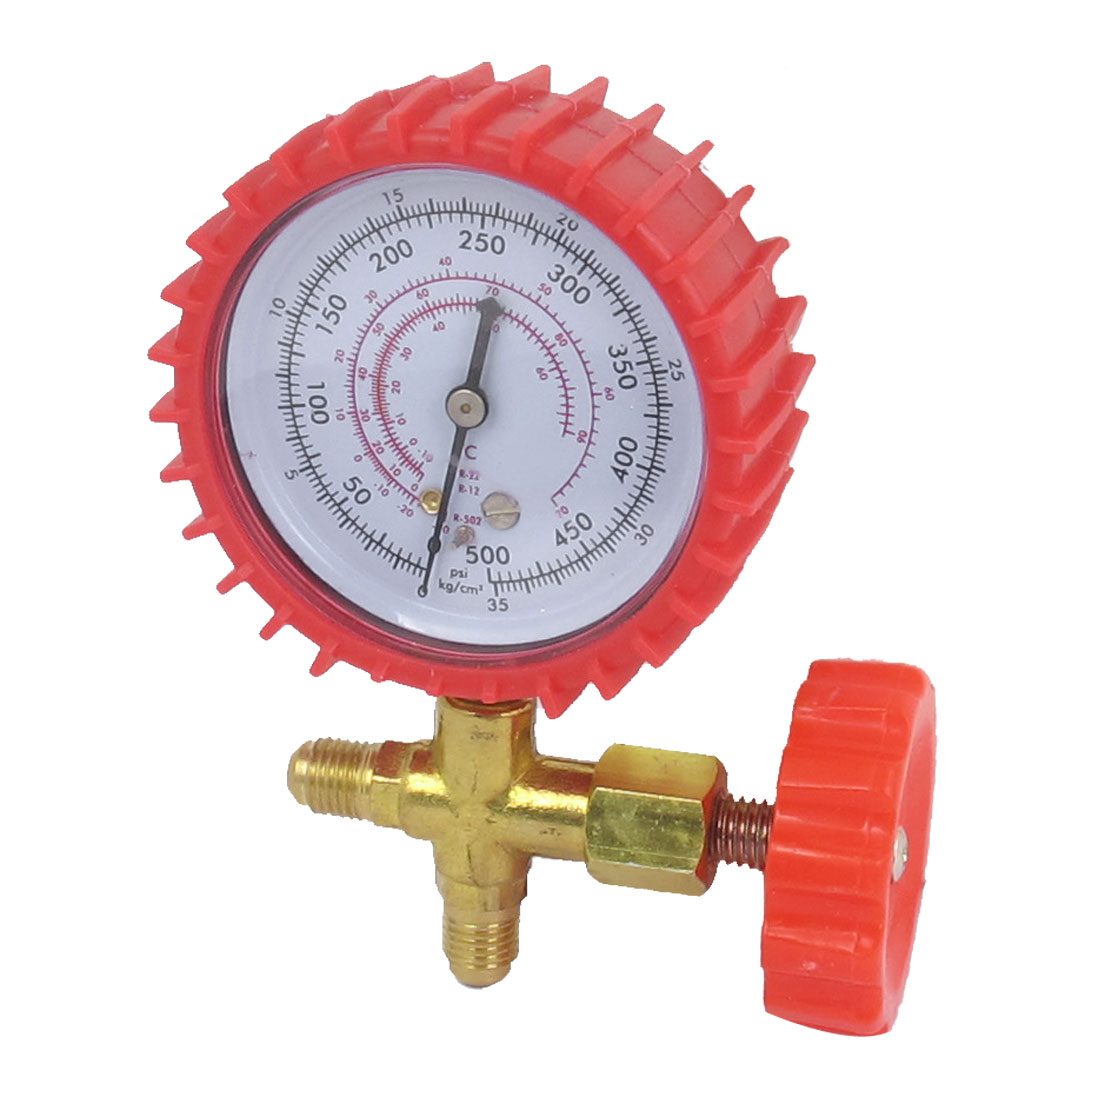 1/4BSP Male Threaded 2 Way Valve Single Manifold Gauge 500psi Replacement